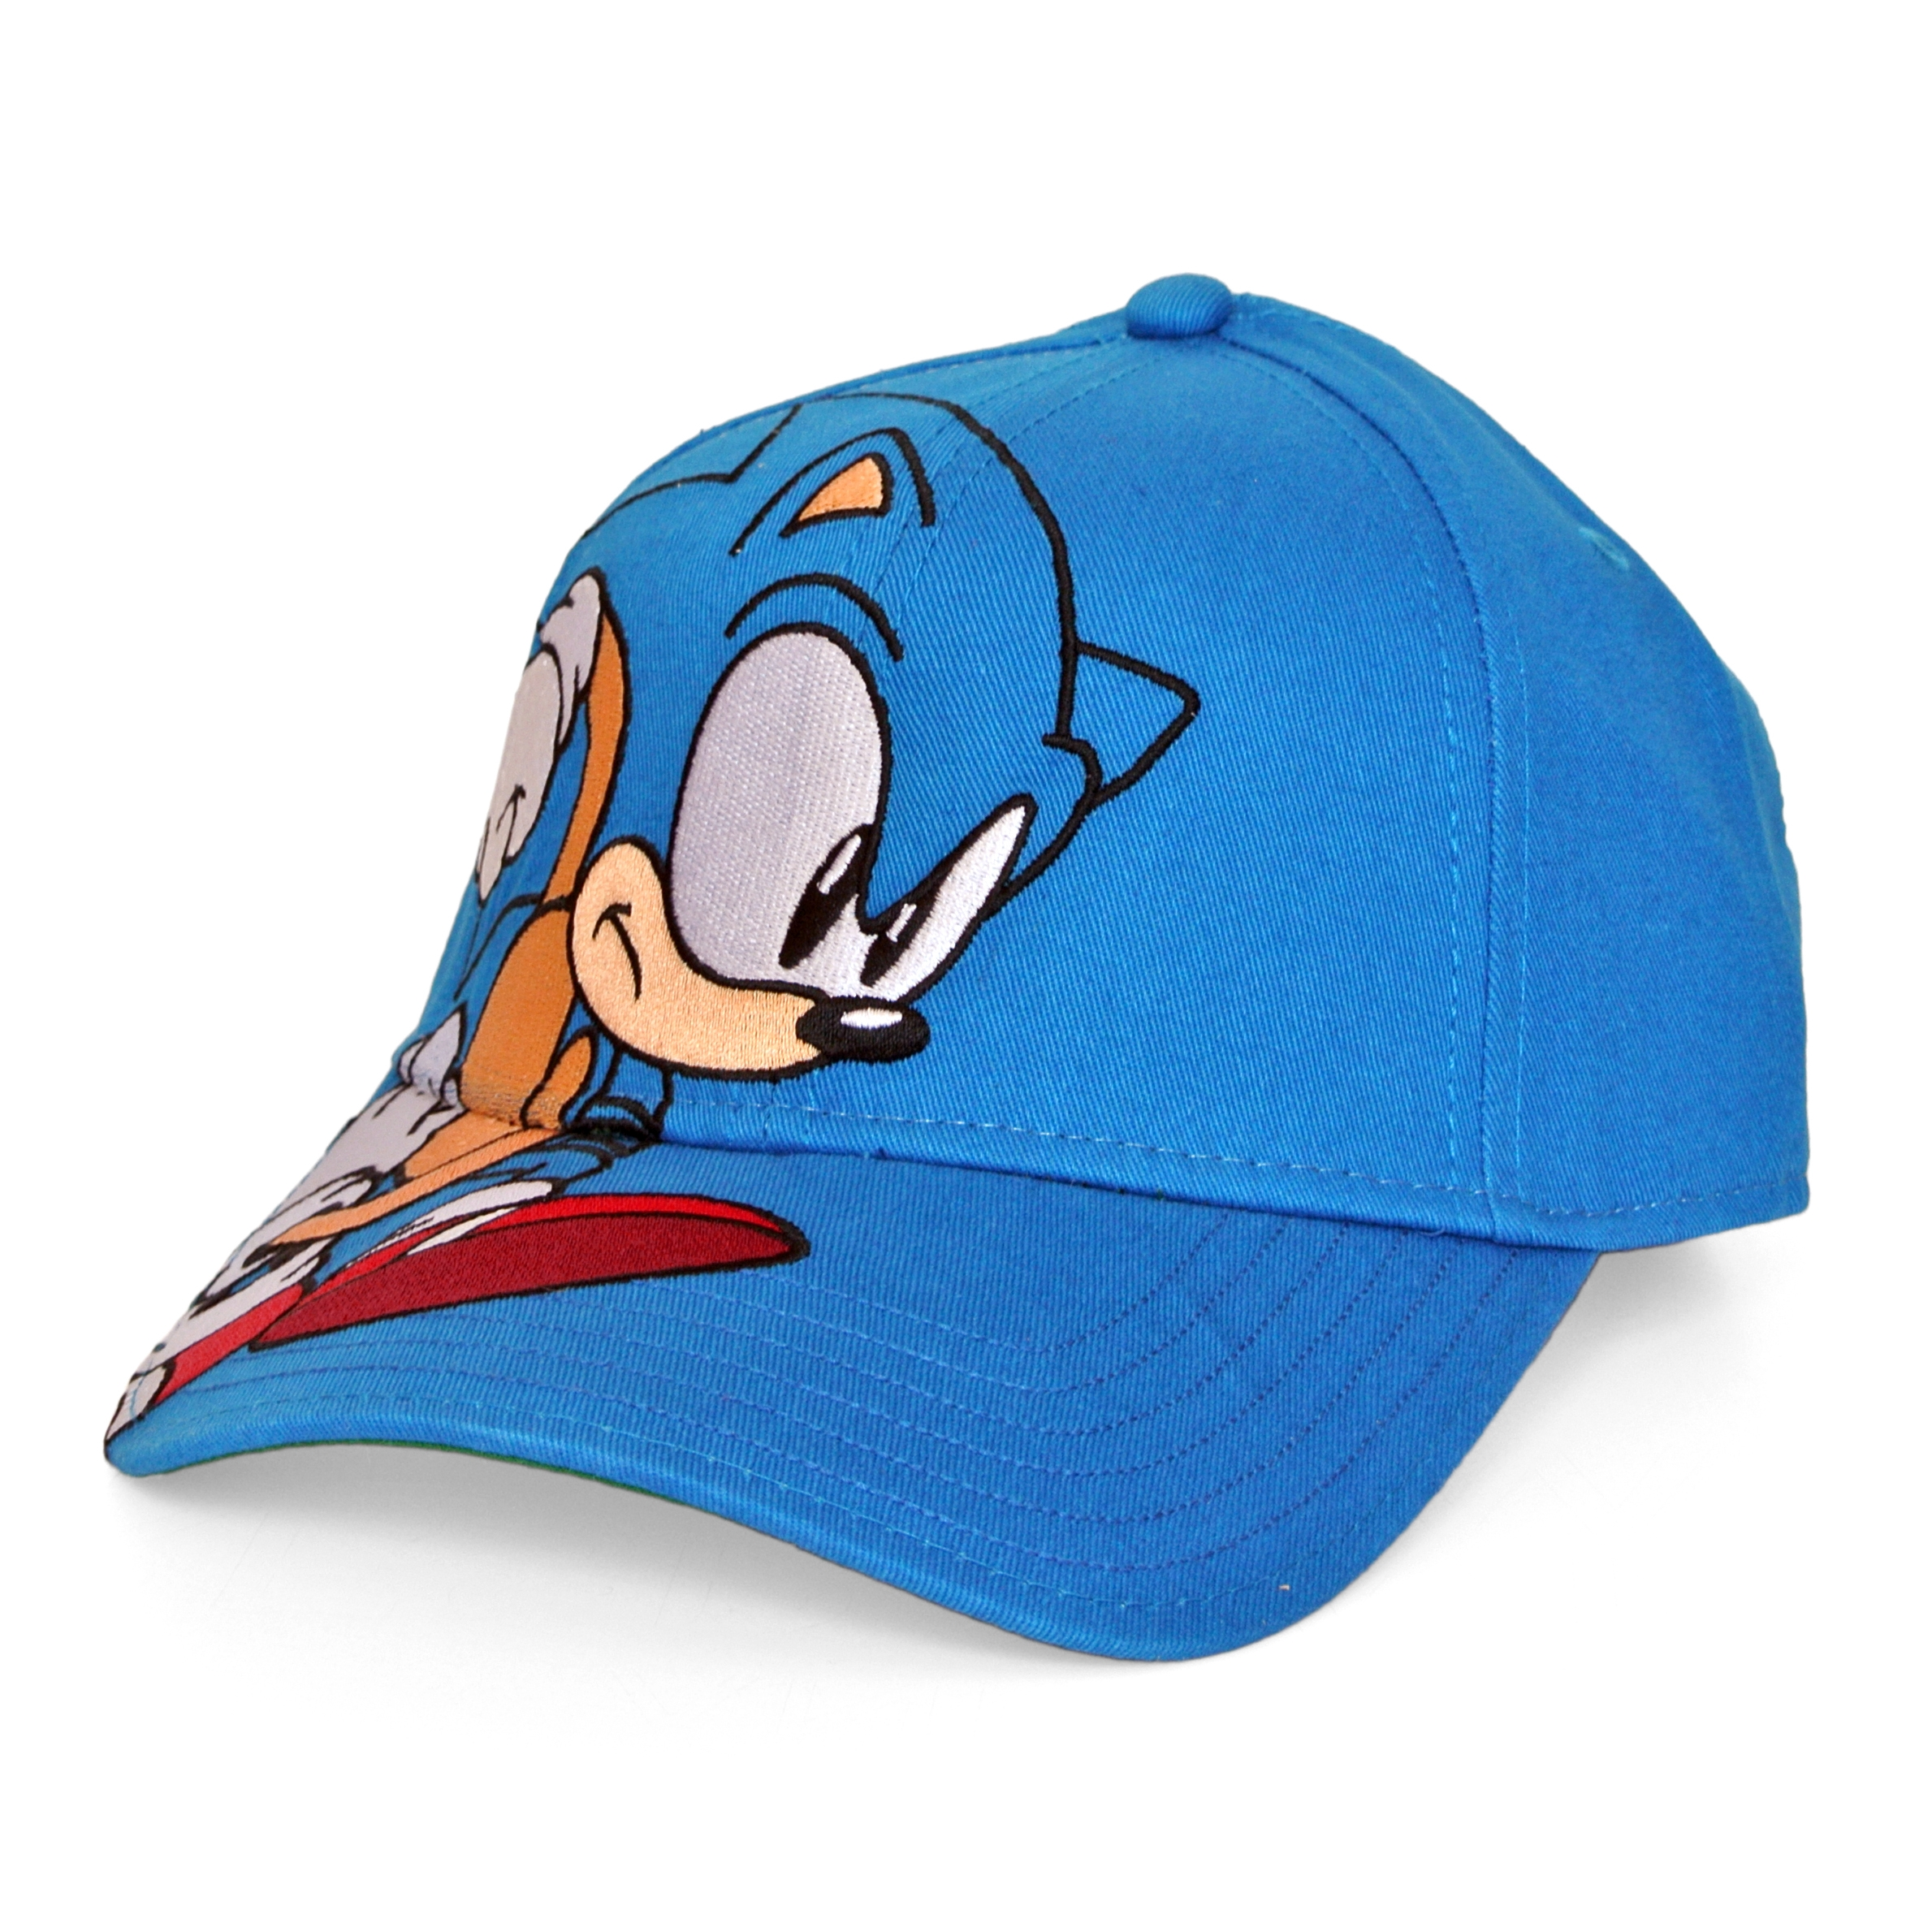 Photograph: Sonic The Hedgehog Cap